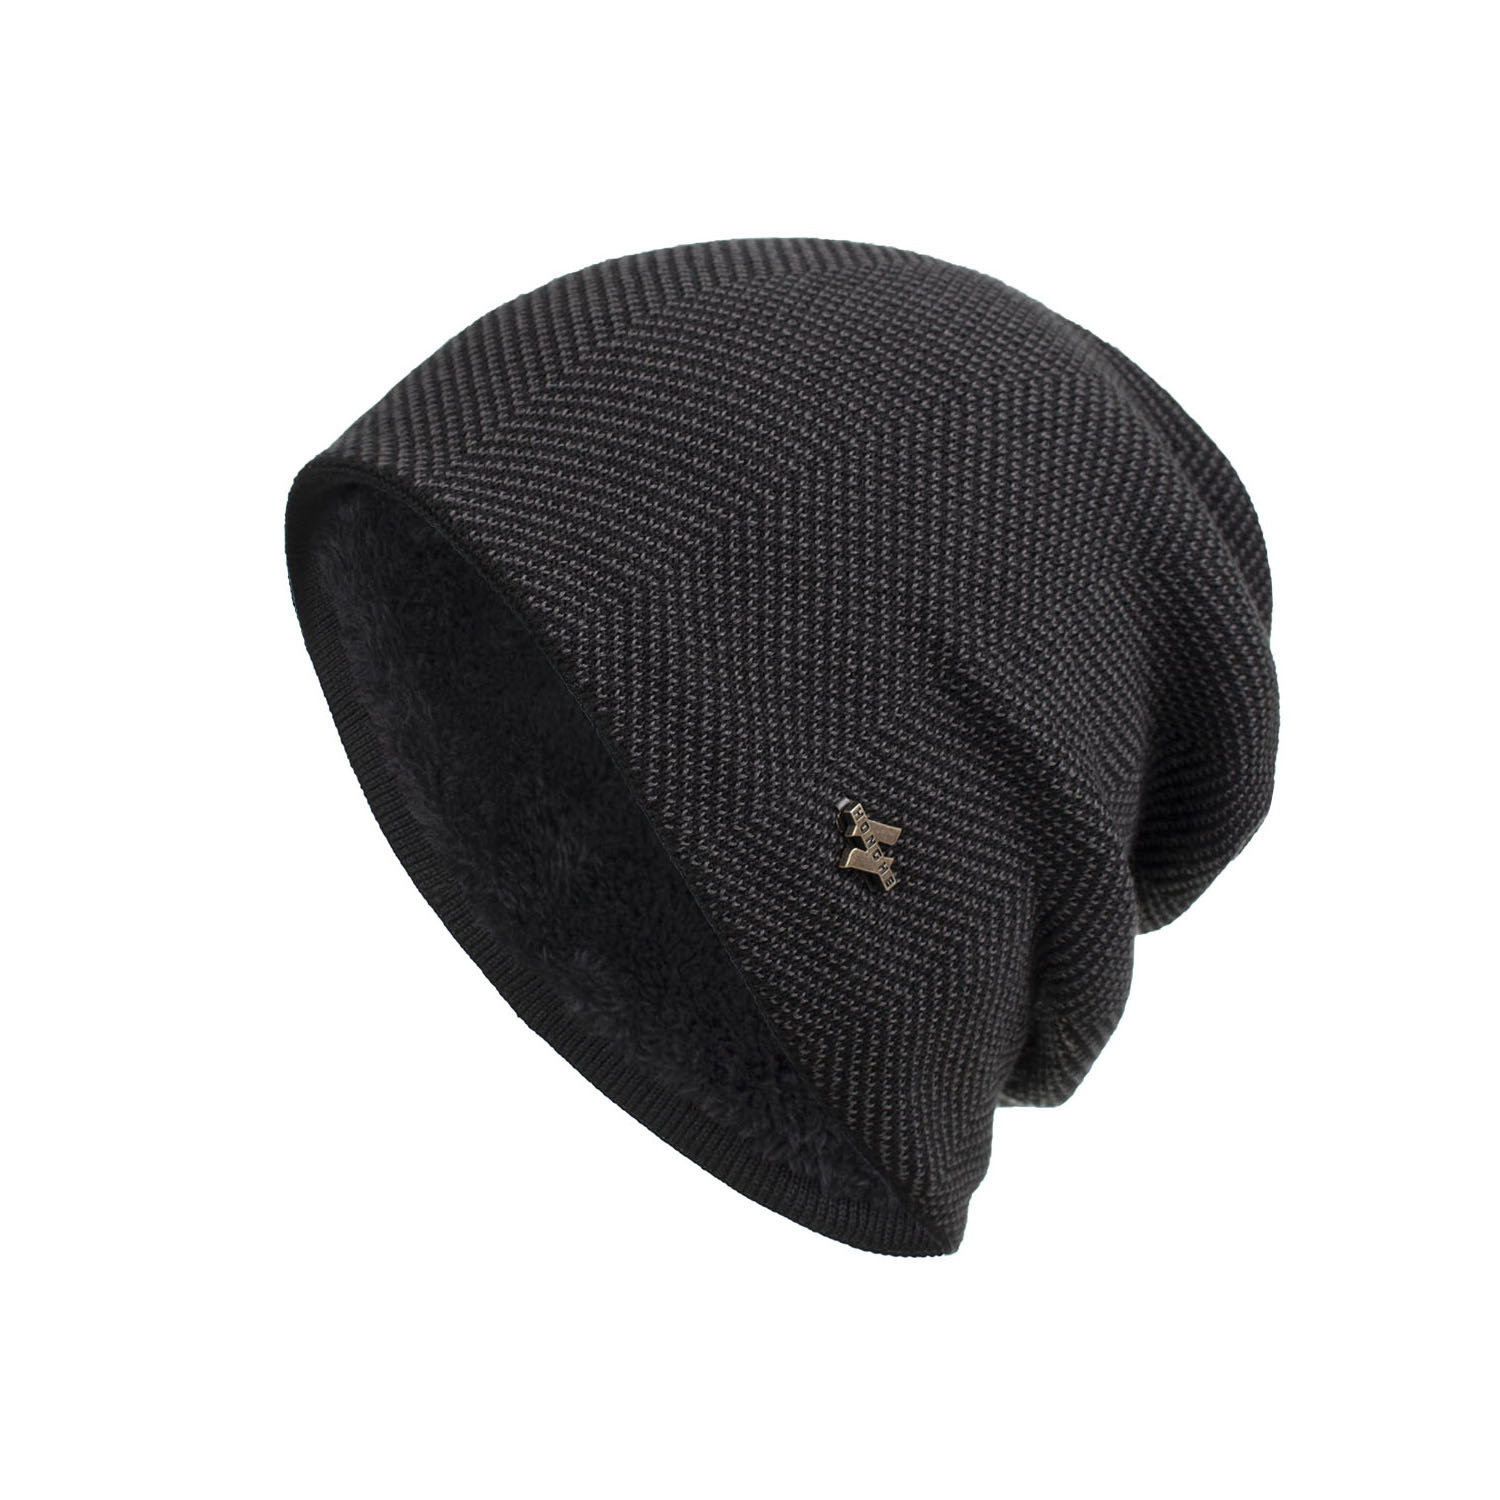 Men's Women's Winter Beanie Hat Warm Knit Bonnet Thick Fleece Lined Gorro Winter Hats For Men Women